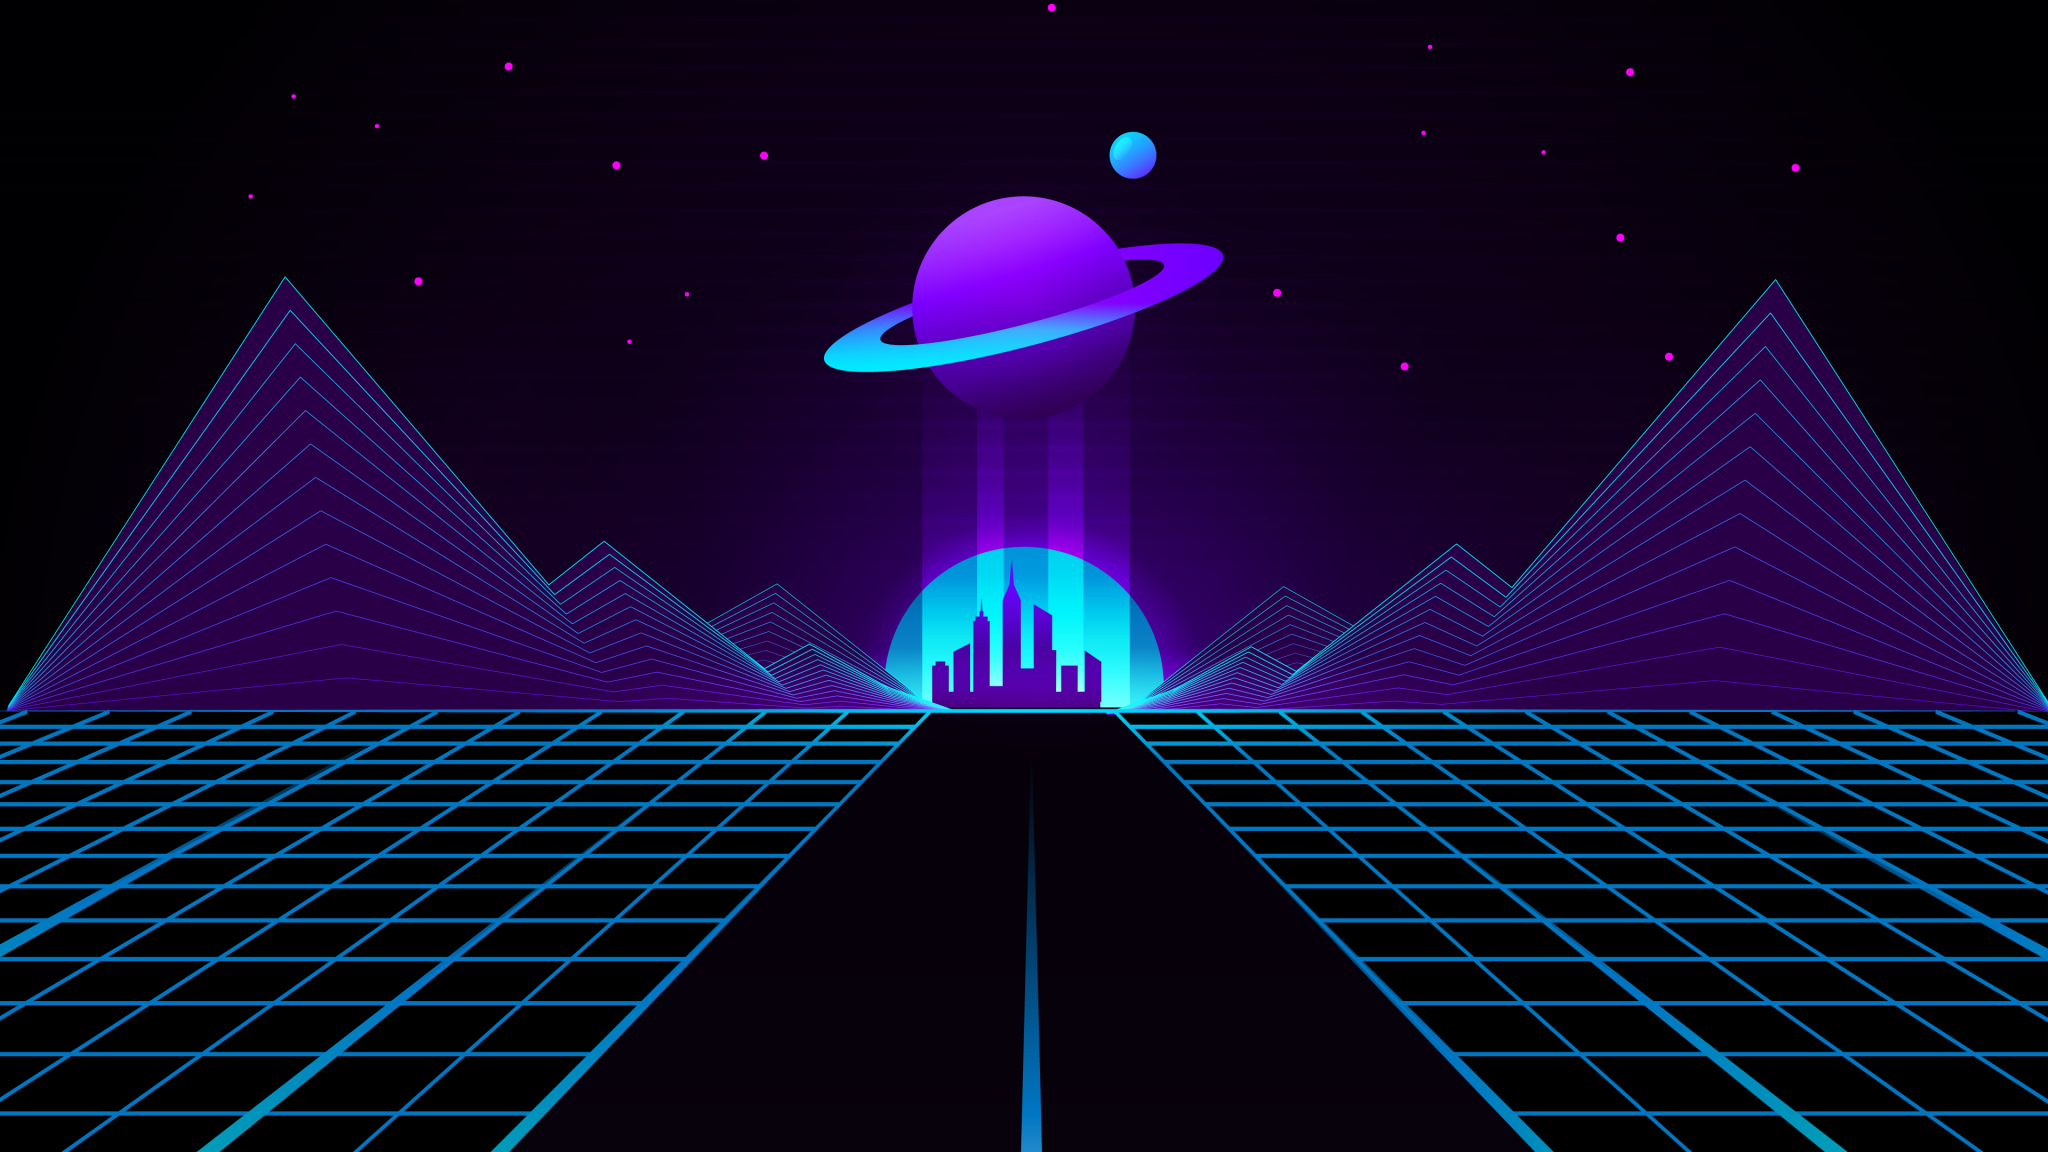 2048x1152 Synthwave Planet Retro Wave 2048x1152 Resolution ...